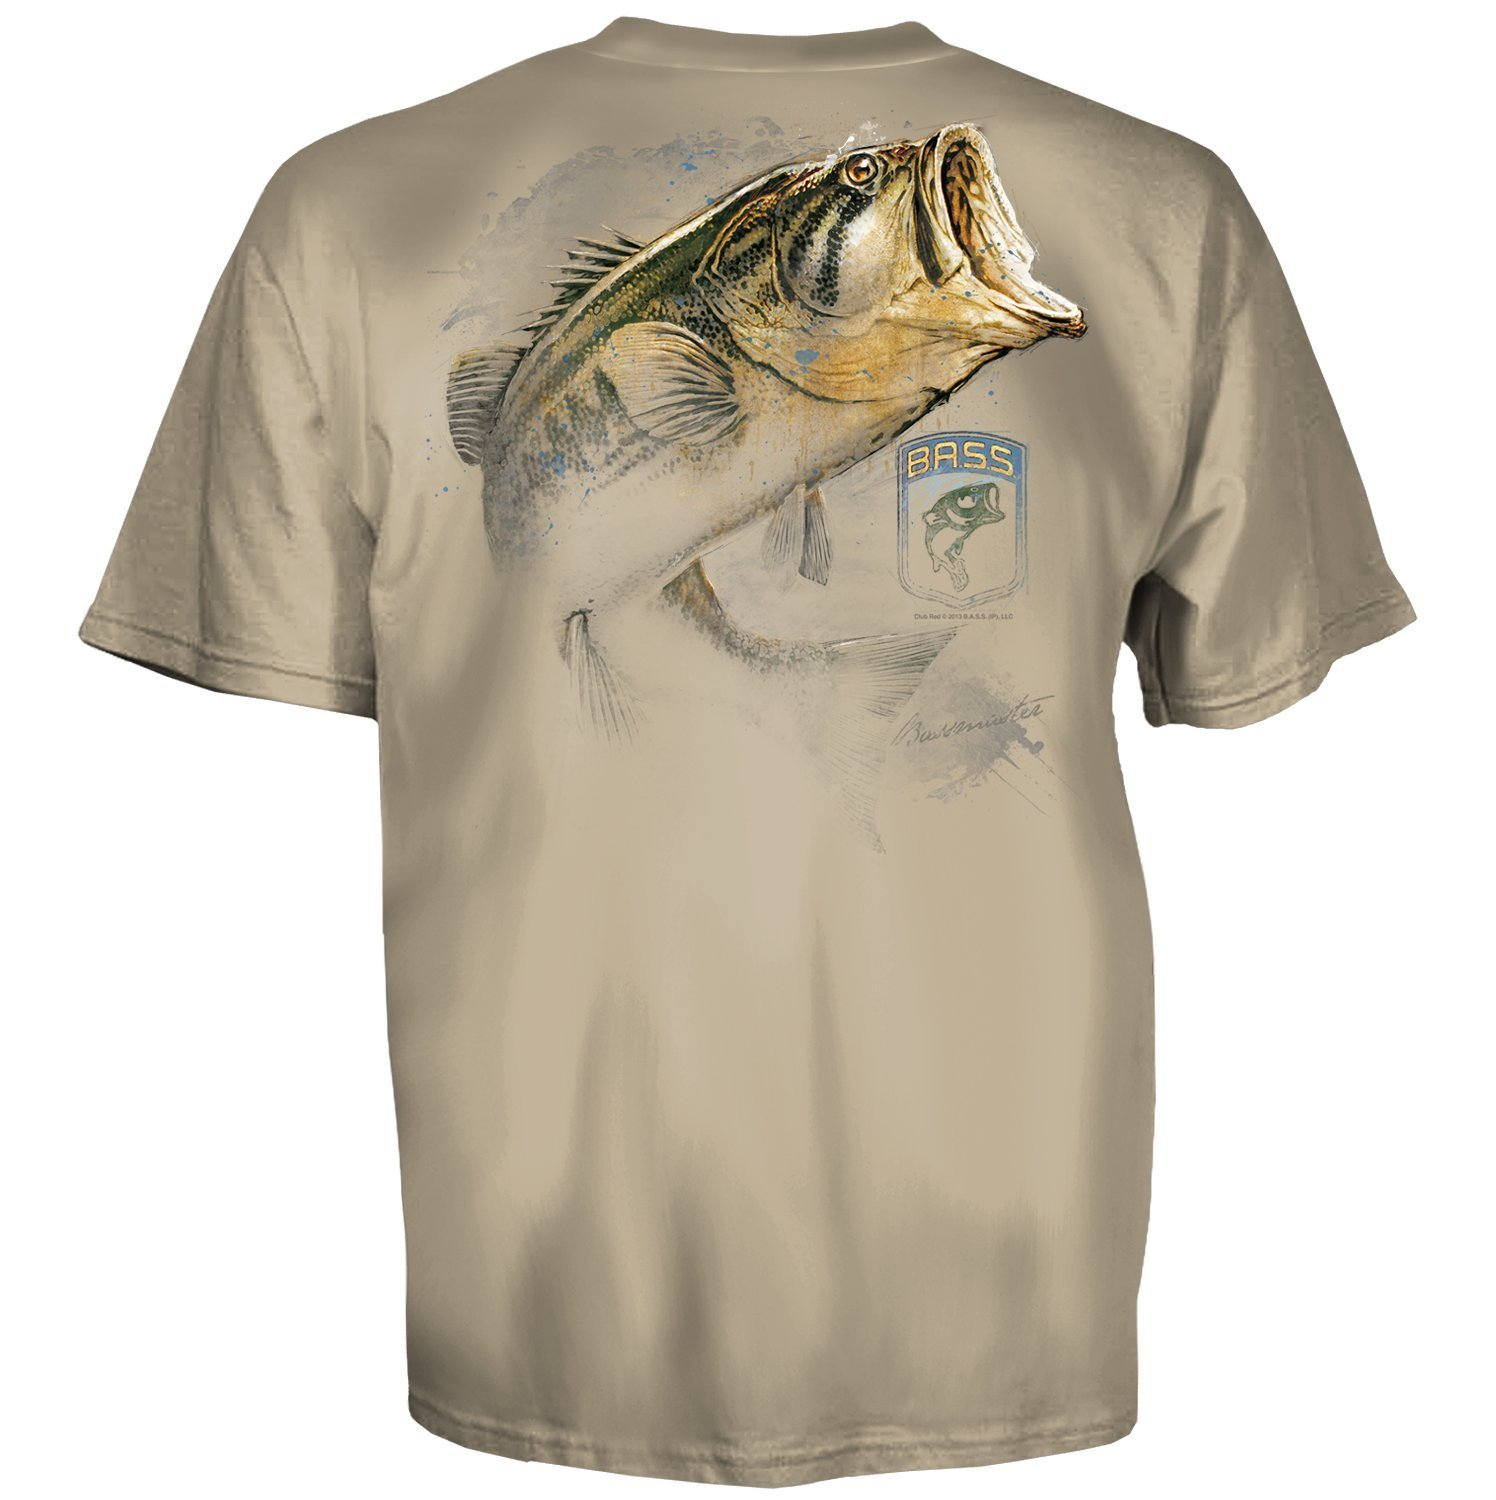 bassmaster bass fishing pencil drawing sand short sleeve